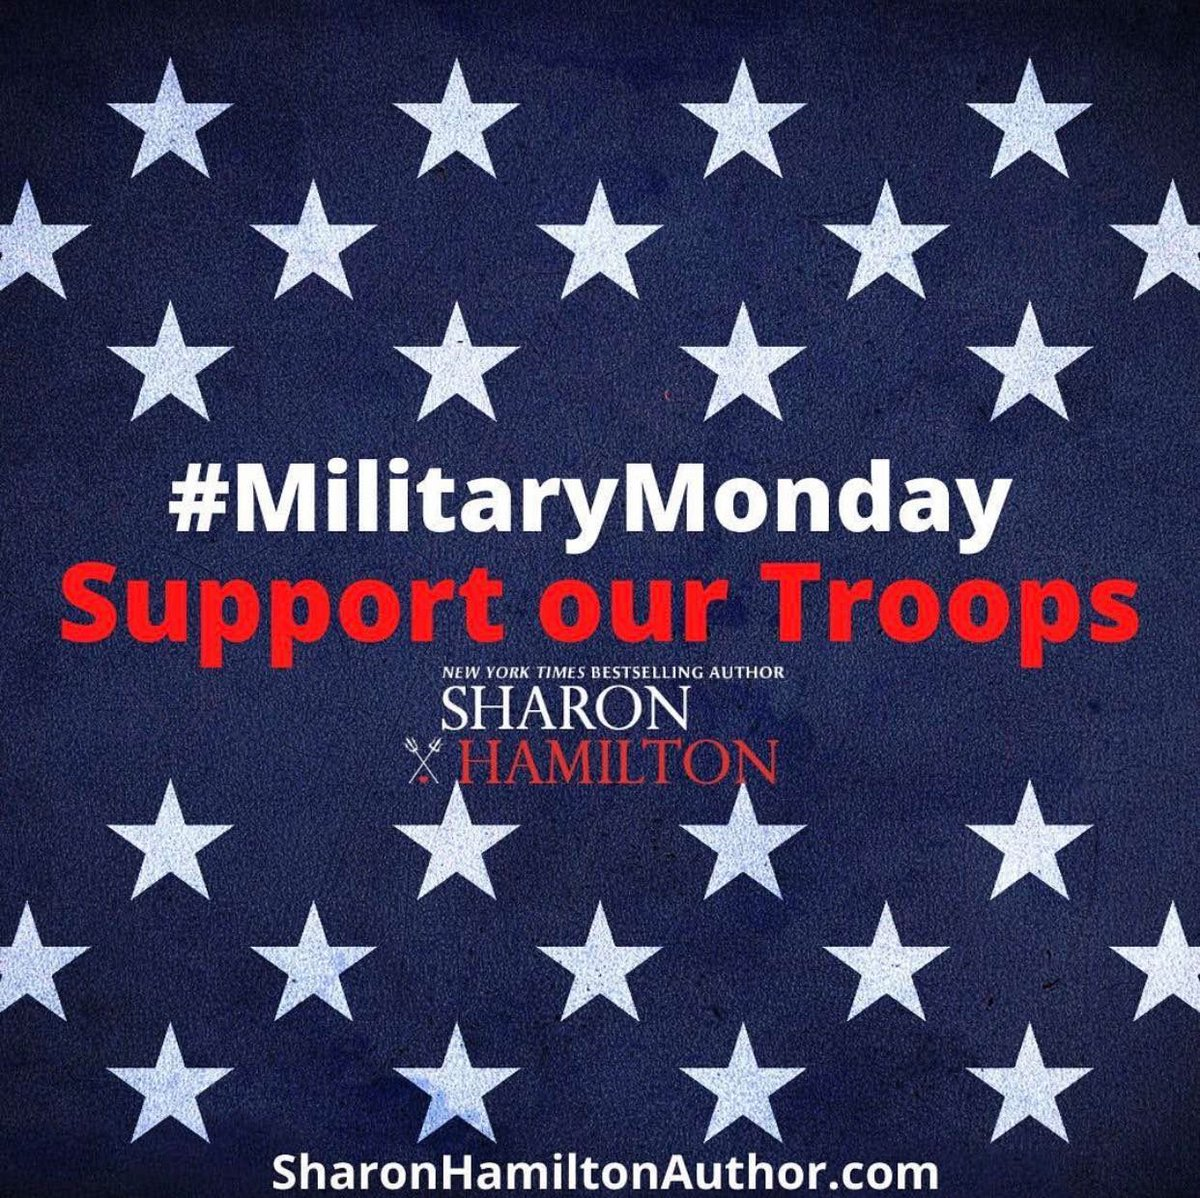 Military Monday -- Support Our Troops  #SOT #SupportourTroops #USMilitary #Gratitude #GiveThanks #Salutes #ThankYouForYourService #MilitaryMonday